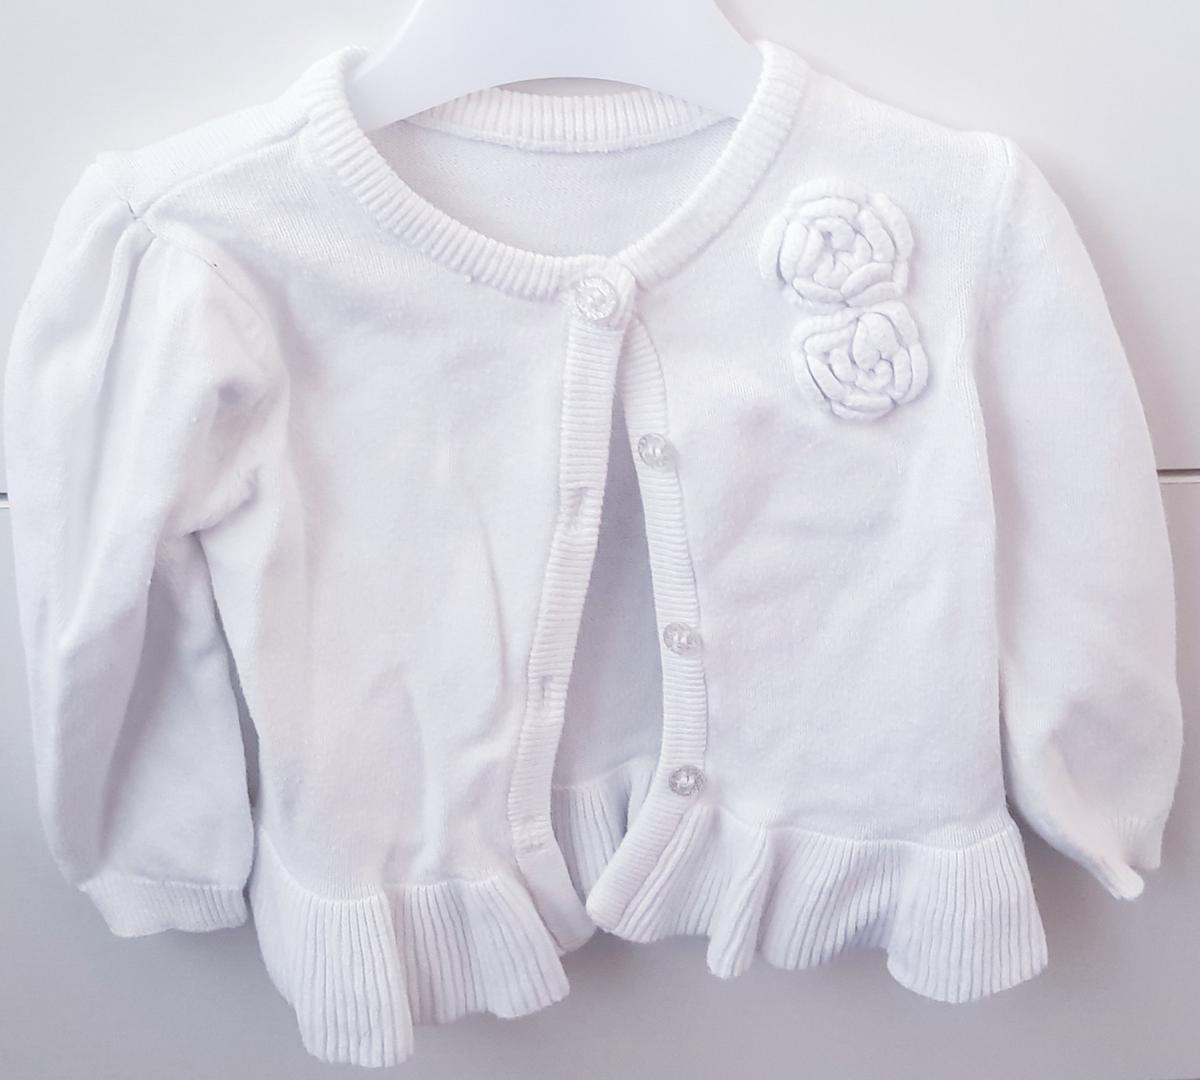 These baby clothes are pre owned and some never been worn . You got options to choose and price of the chosen one can be given .(£5-10) the sizes ranges from 0-18months Buyers pays for the postage